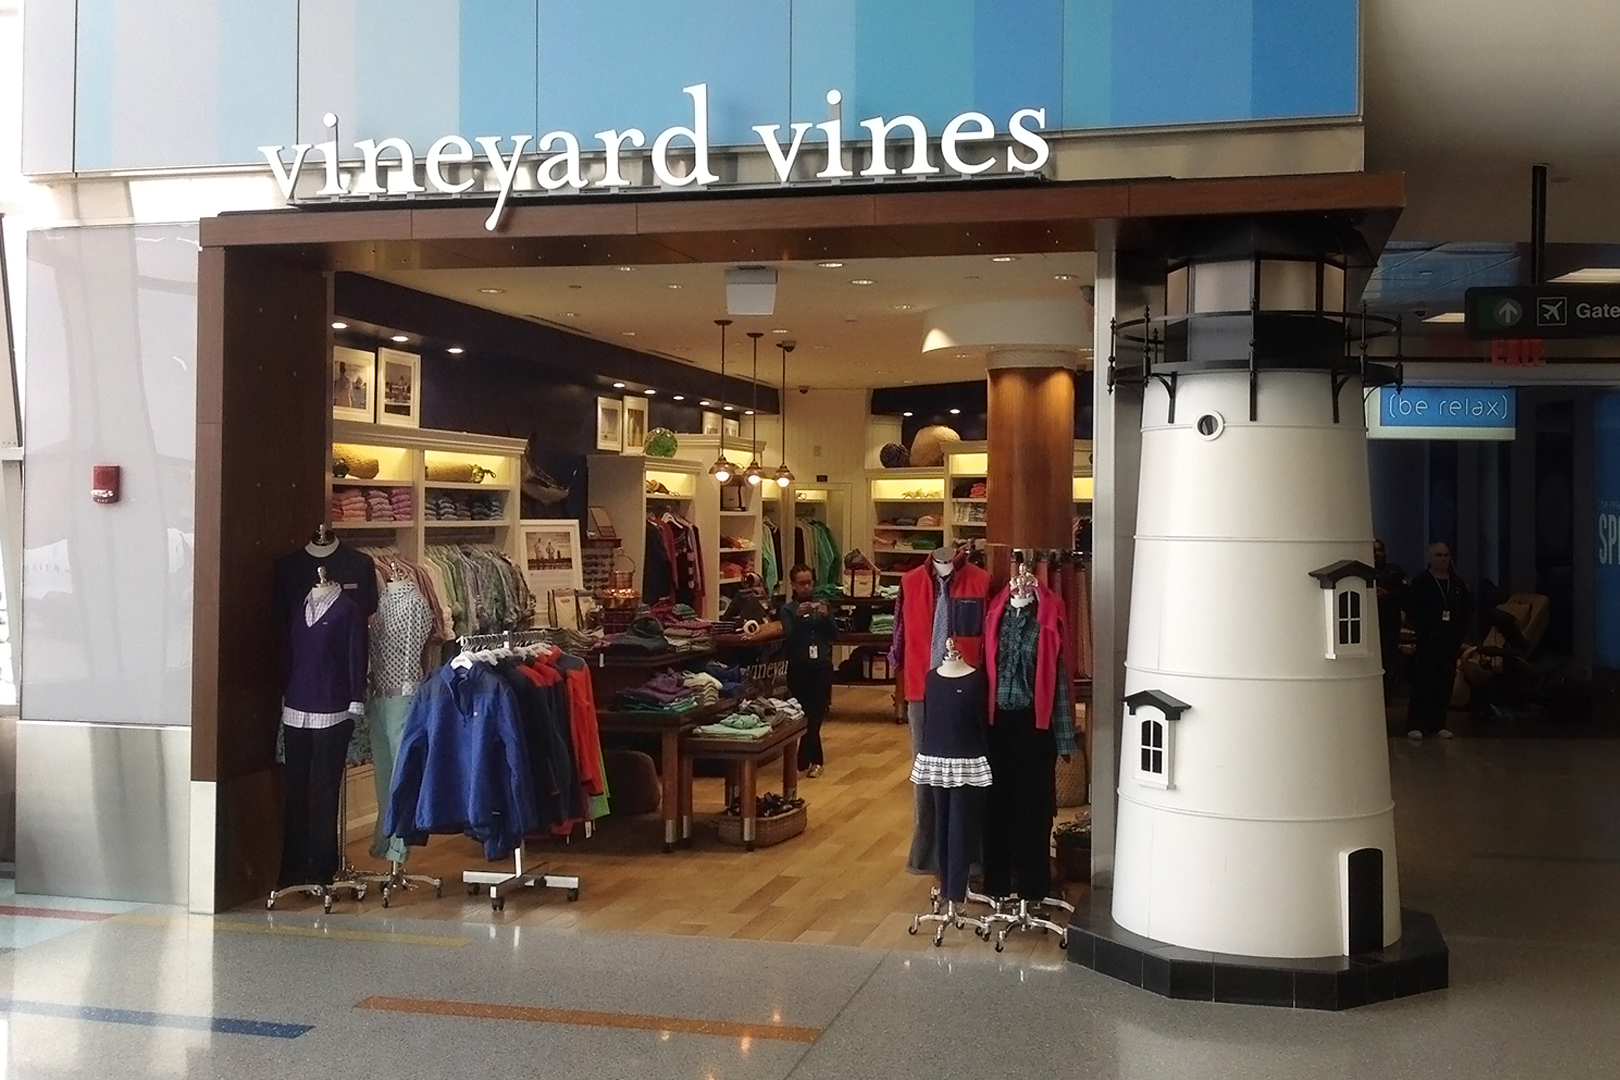 Vineyard Vines storefront, lighthouse serves as a pillar on the right.